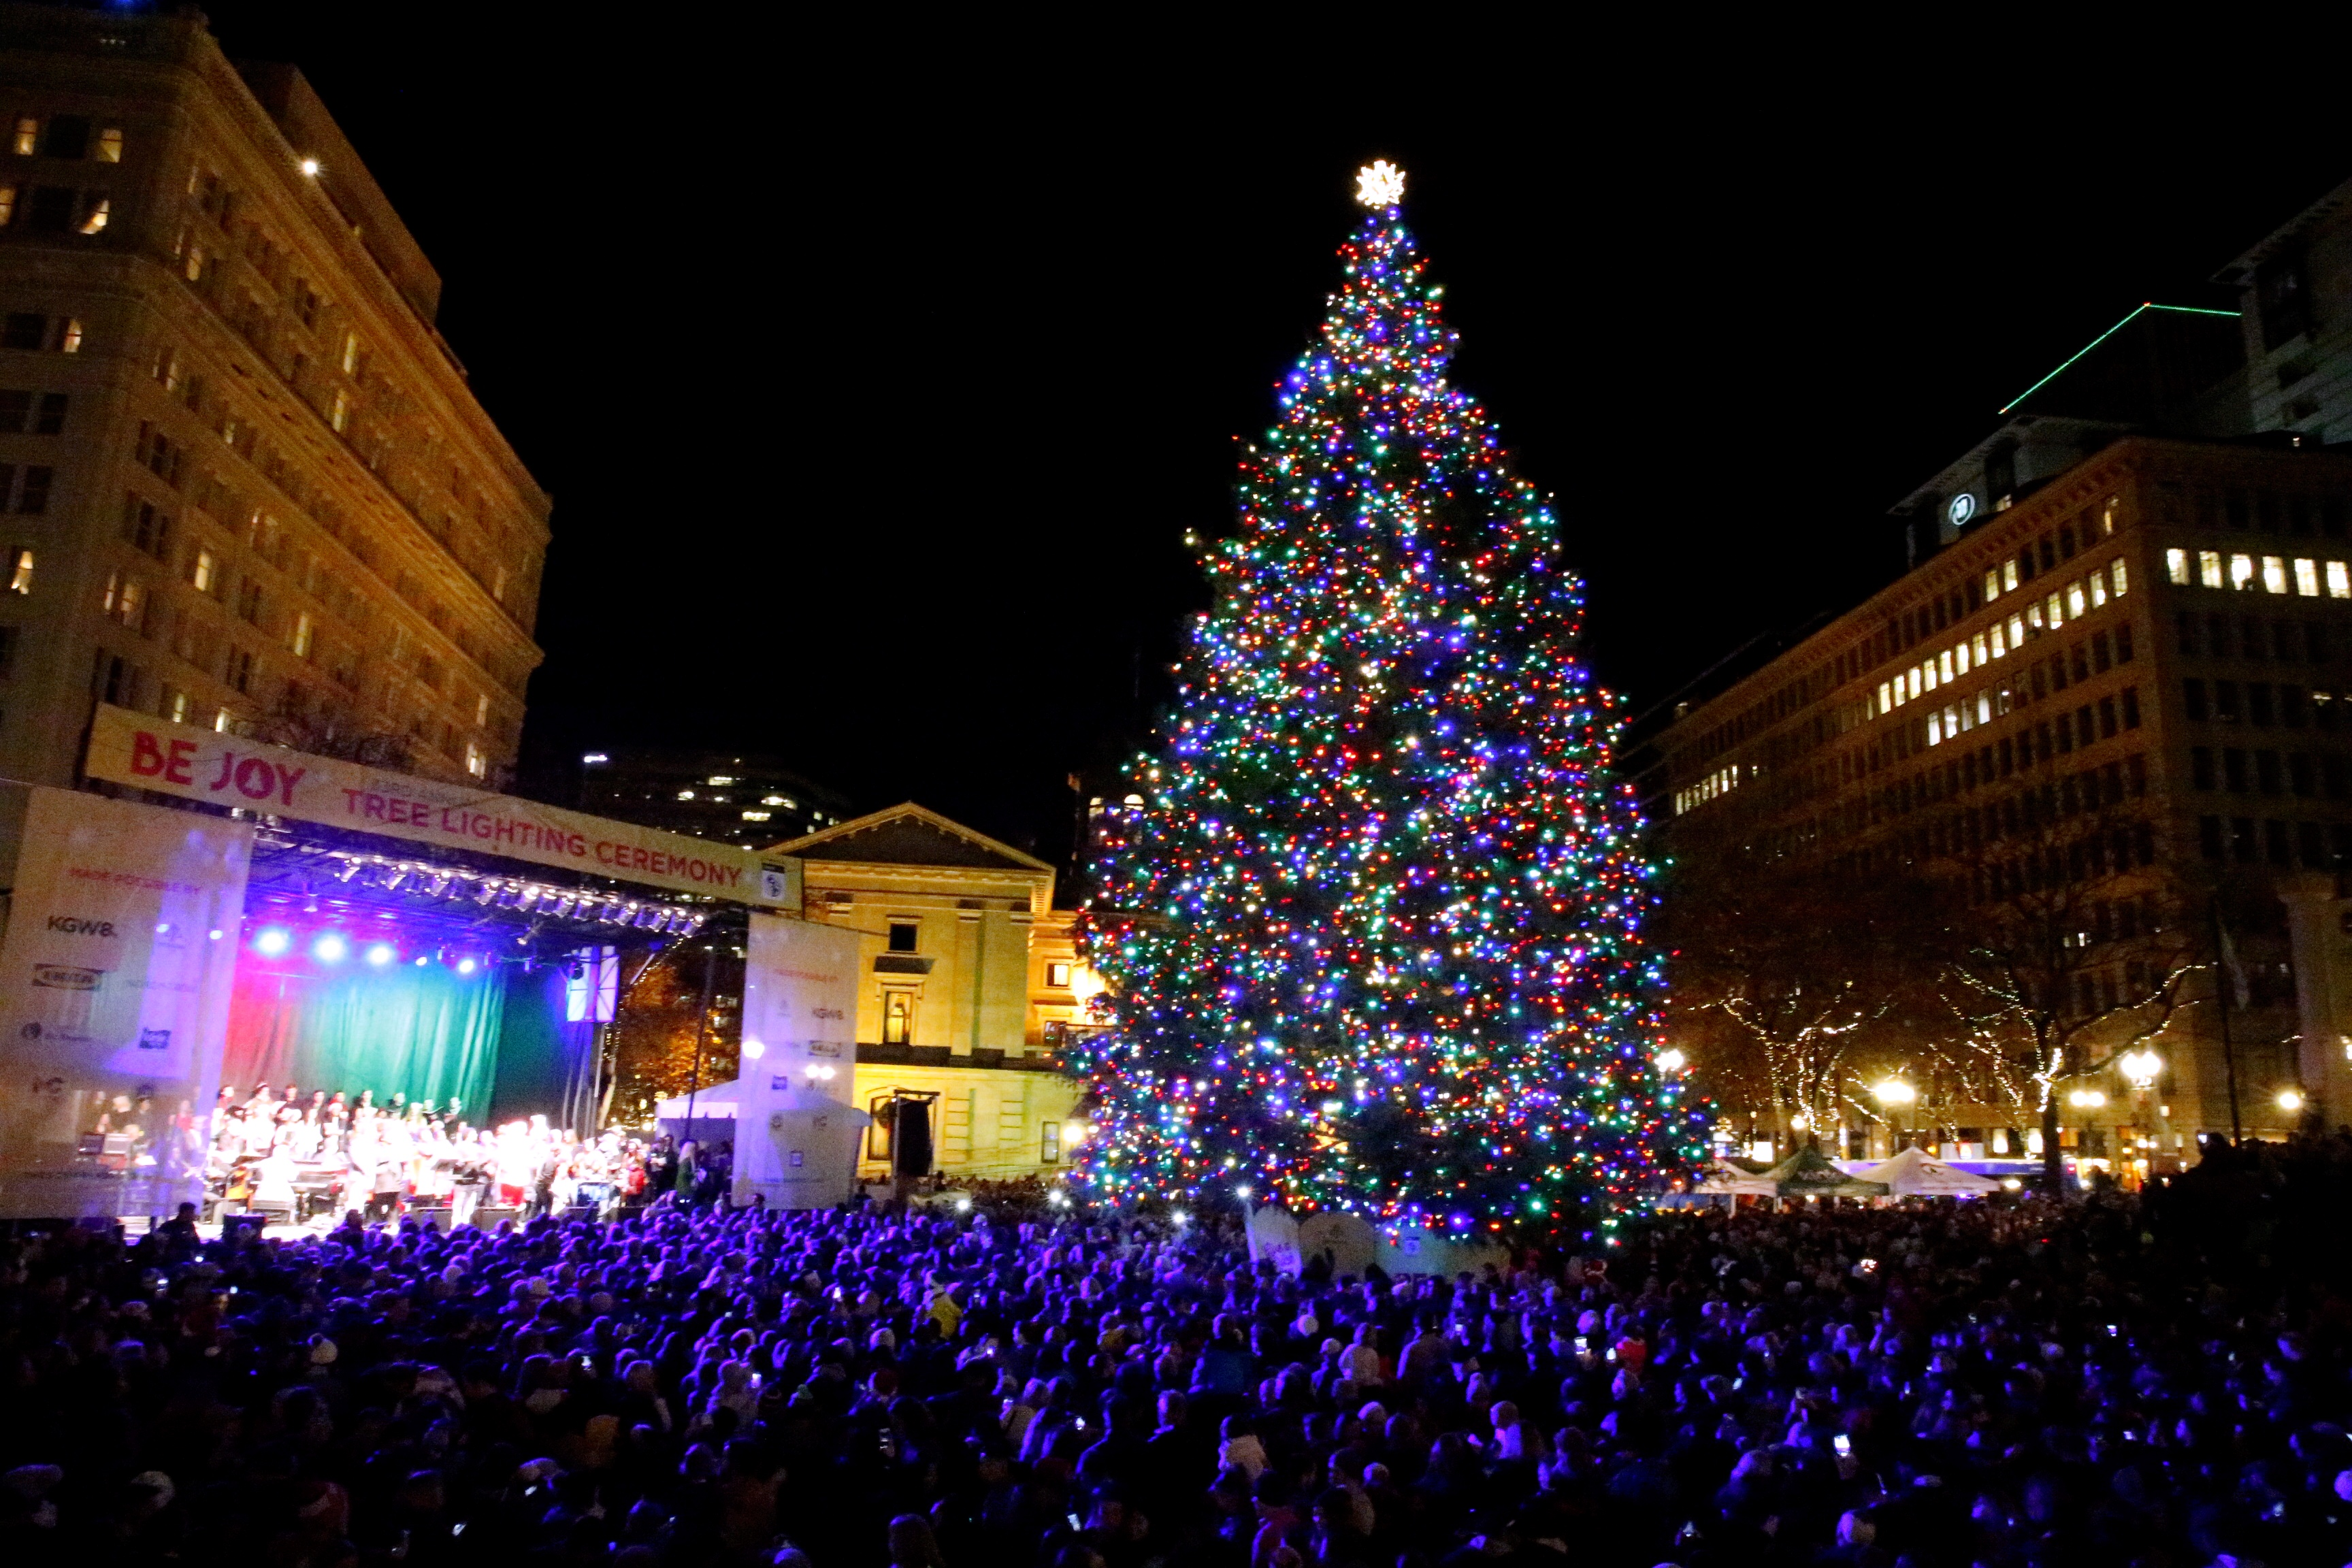 Christmas Events Portland Or 2021 Your 2020 Oregon Holiday Events Guide What S Happening And What S Not Oregonlive Com